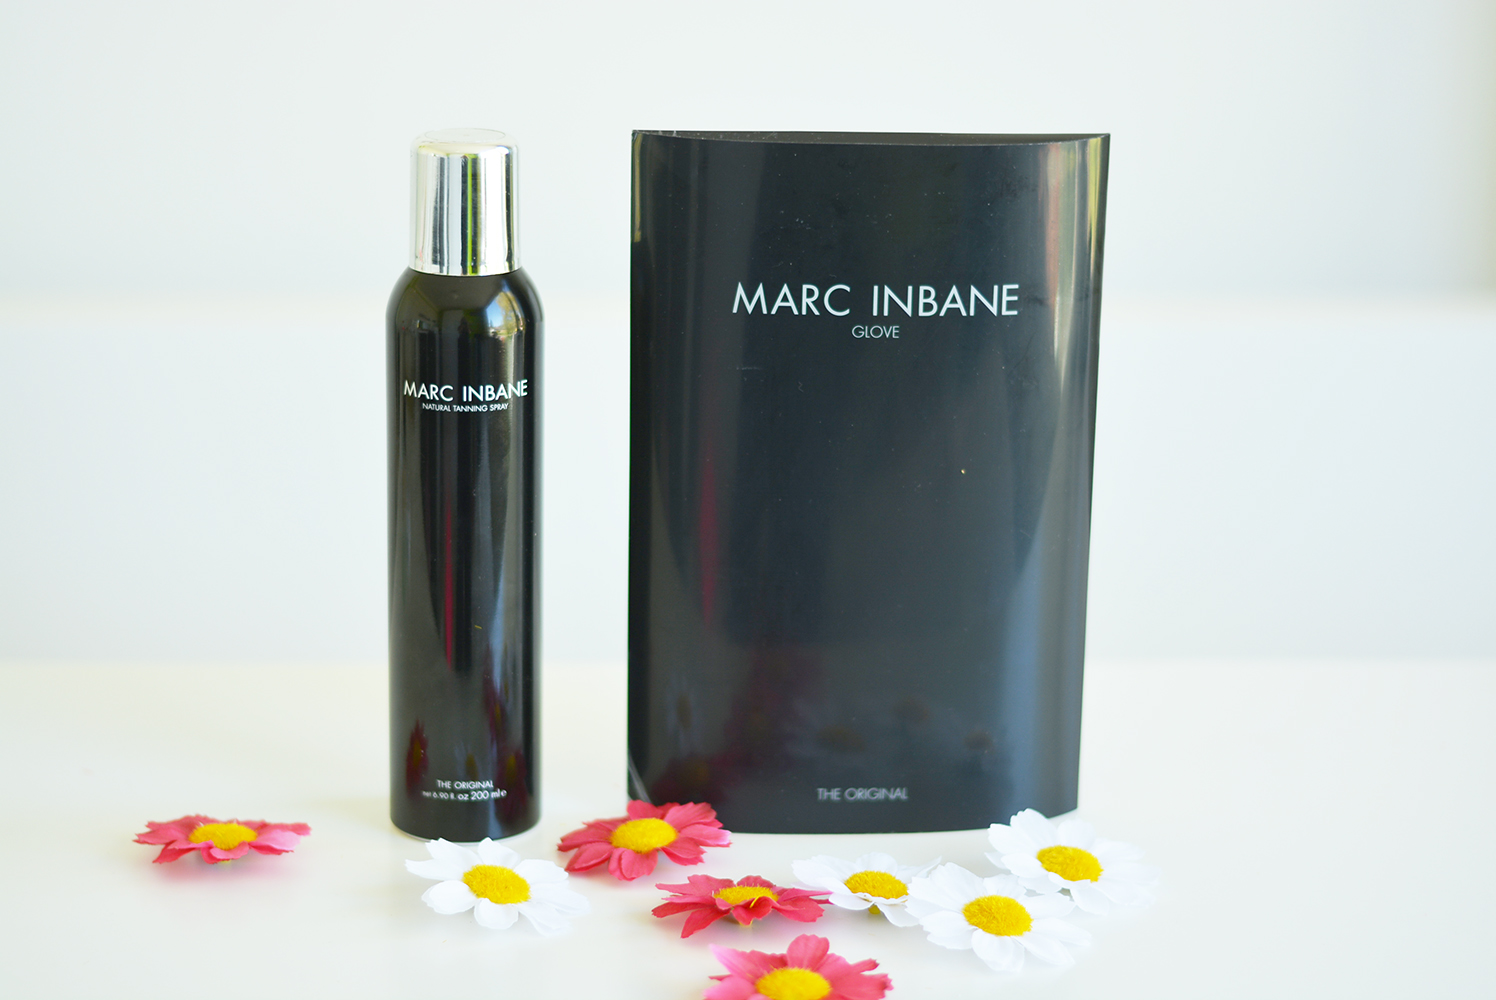 Marc Inbane Natural Tanning Spray + Glove